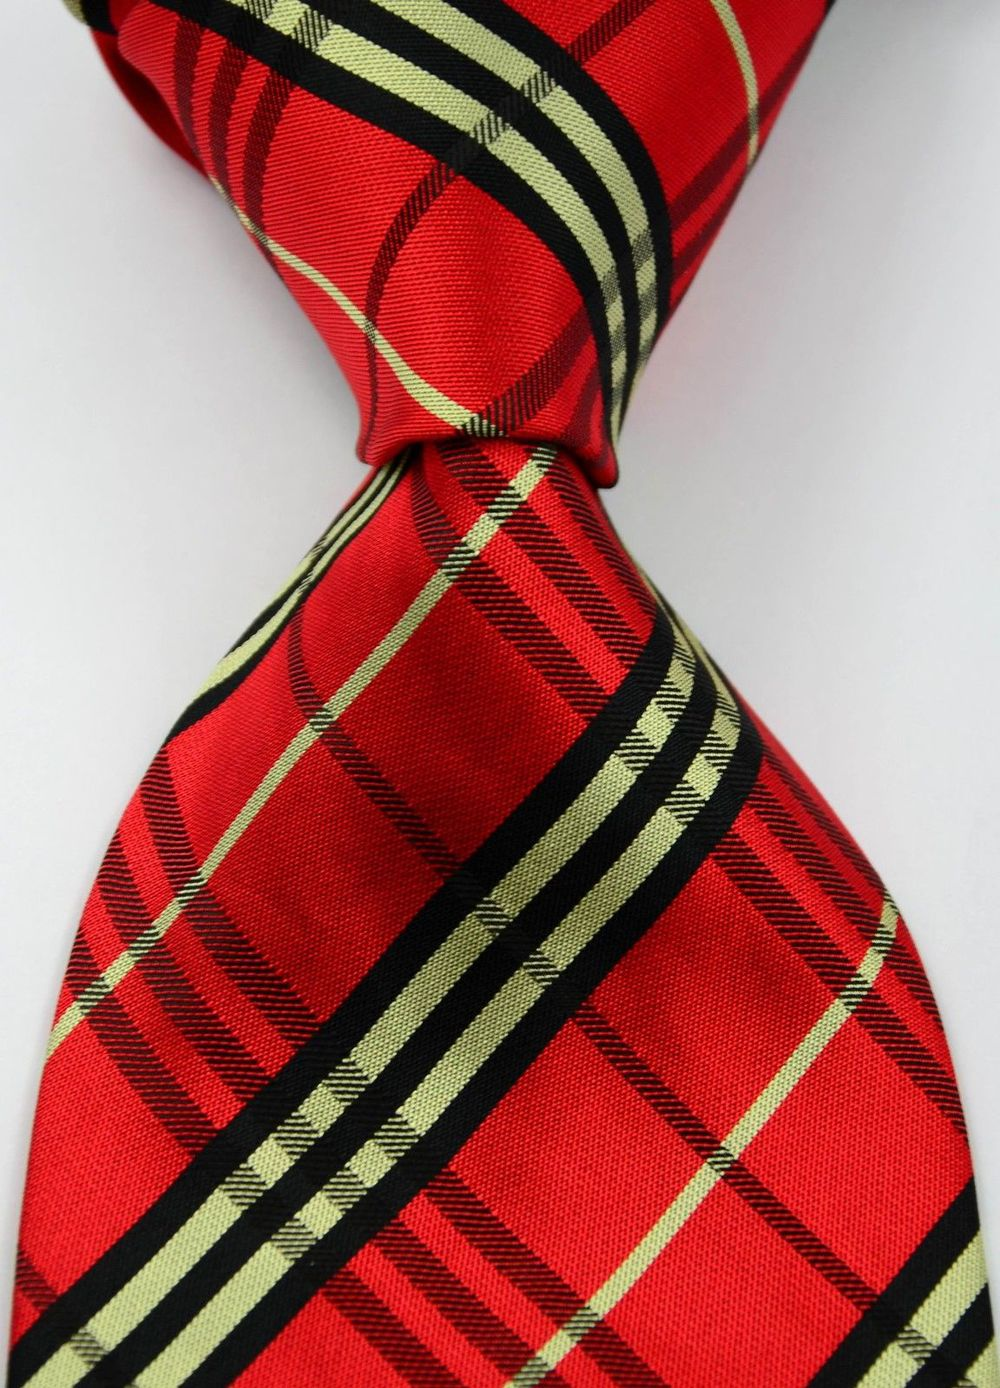 Classic Striped Red Black JACQUARD WOVEN Silk Men's Tie Necktie #174 - wei669 store